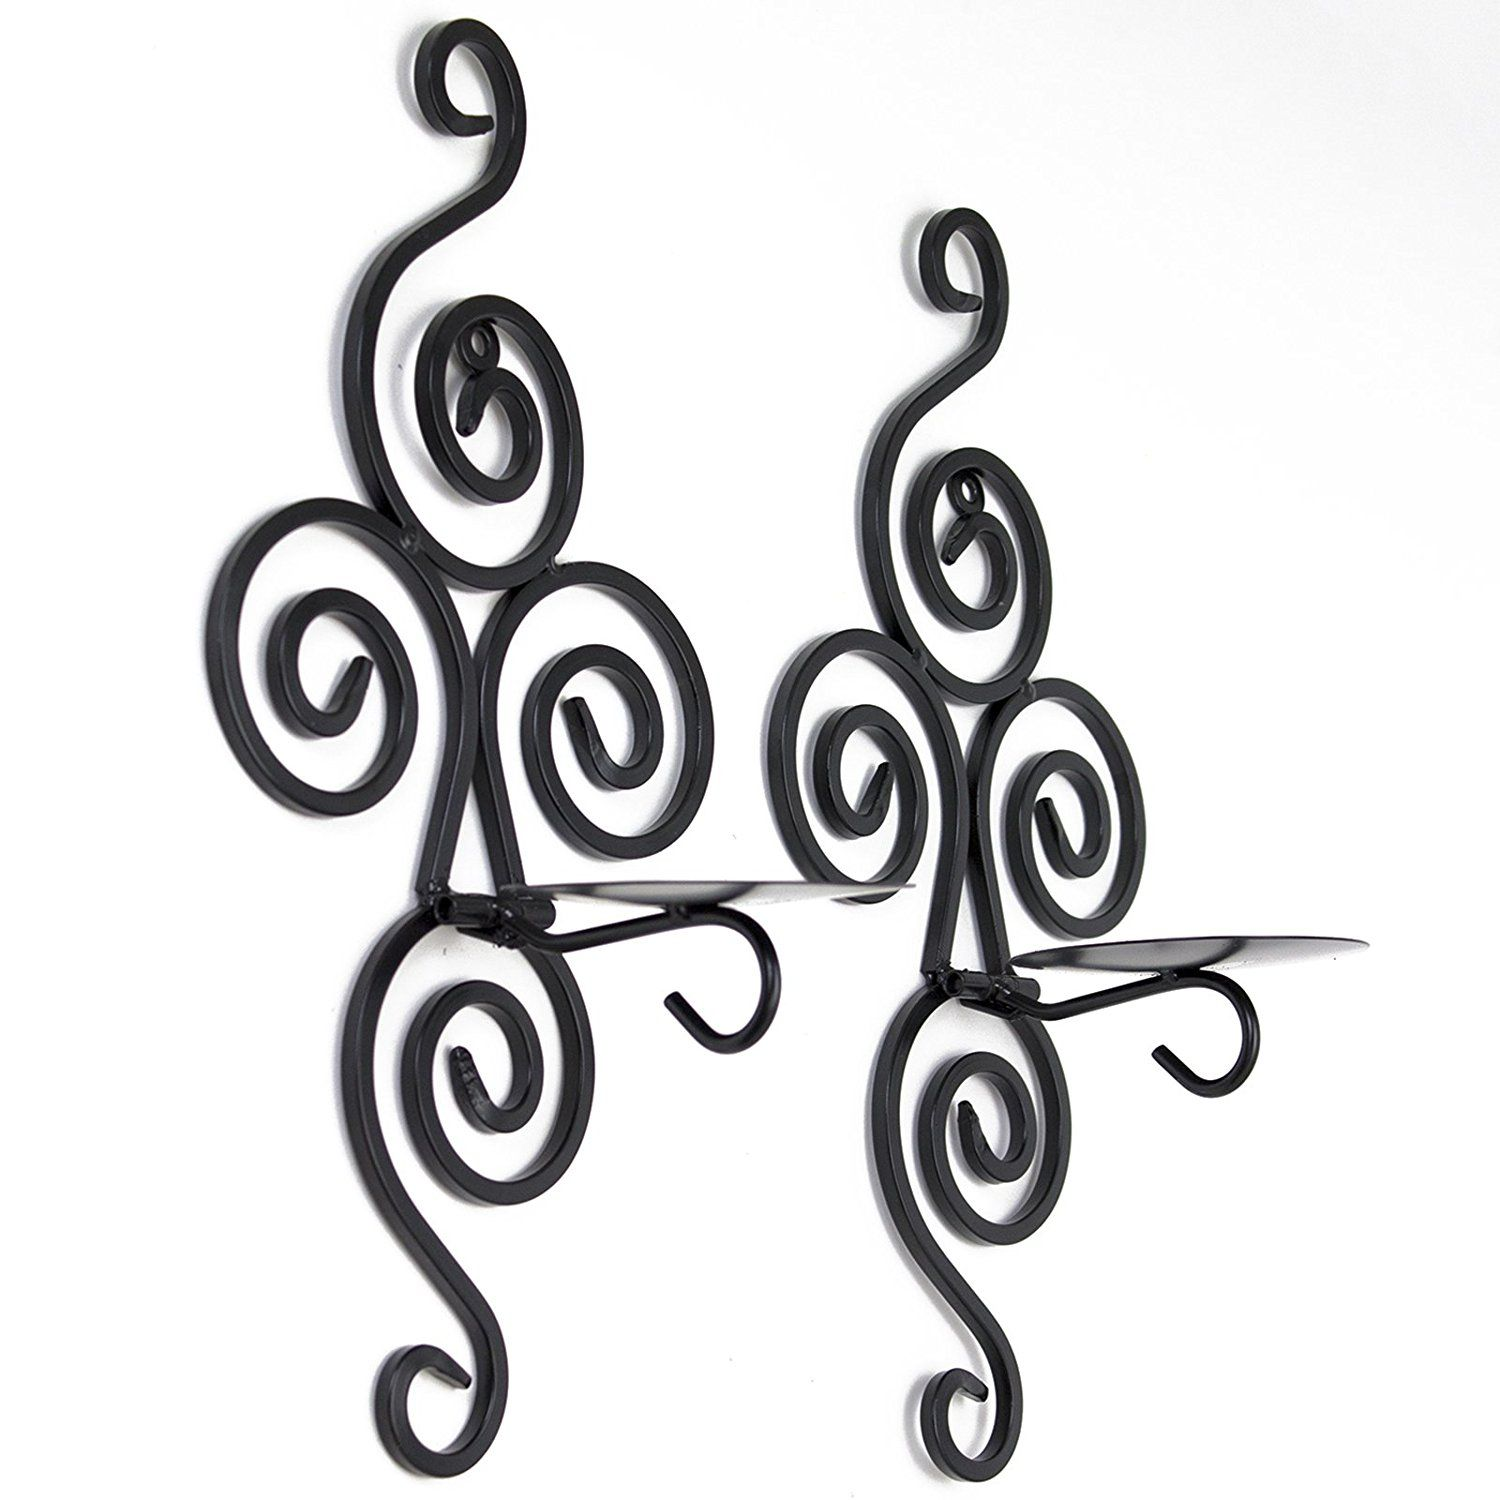 Adorox set sconce swirling wrought iron hanging wall